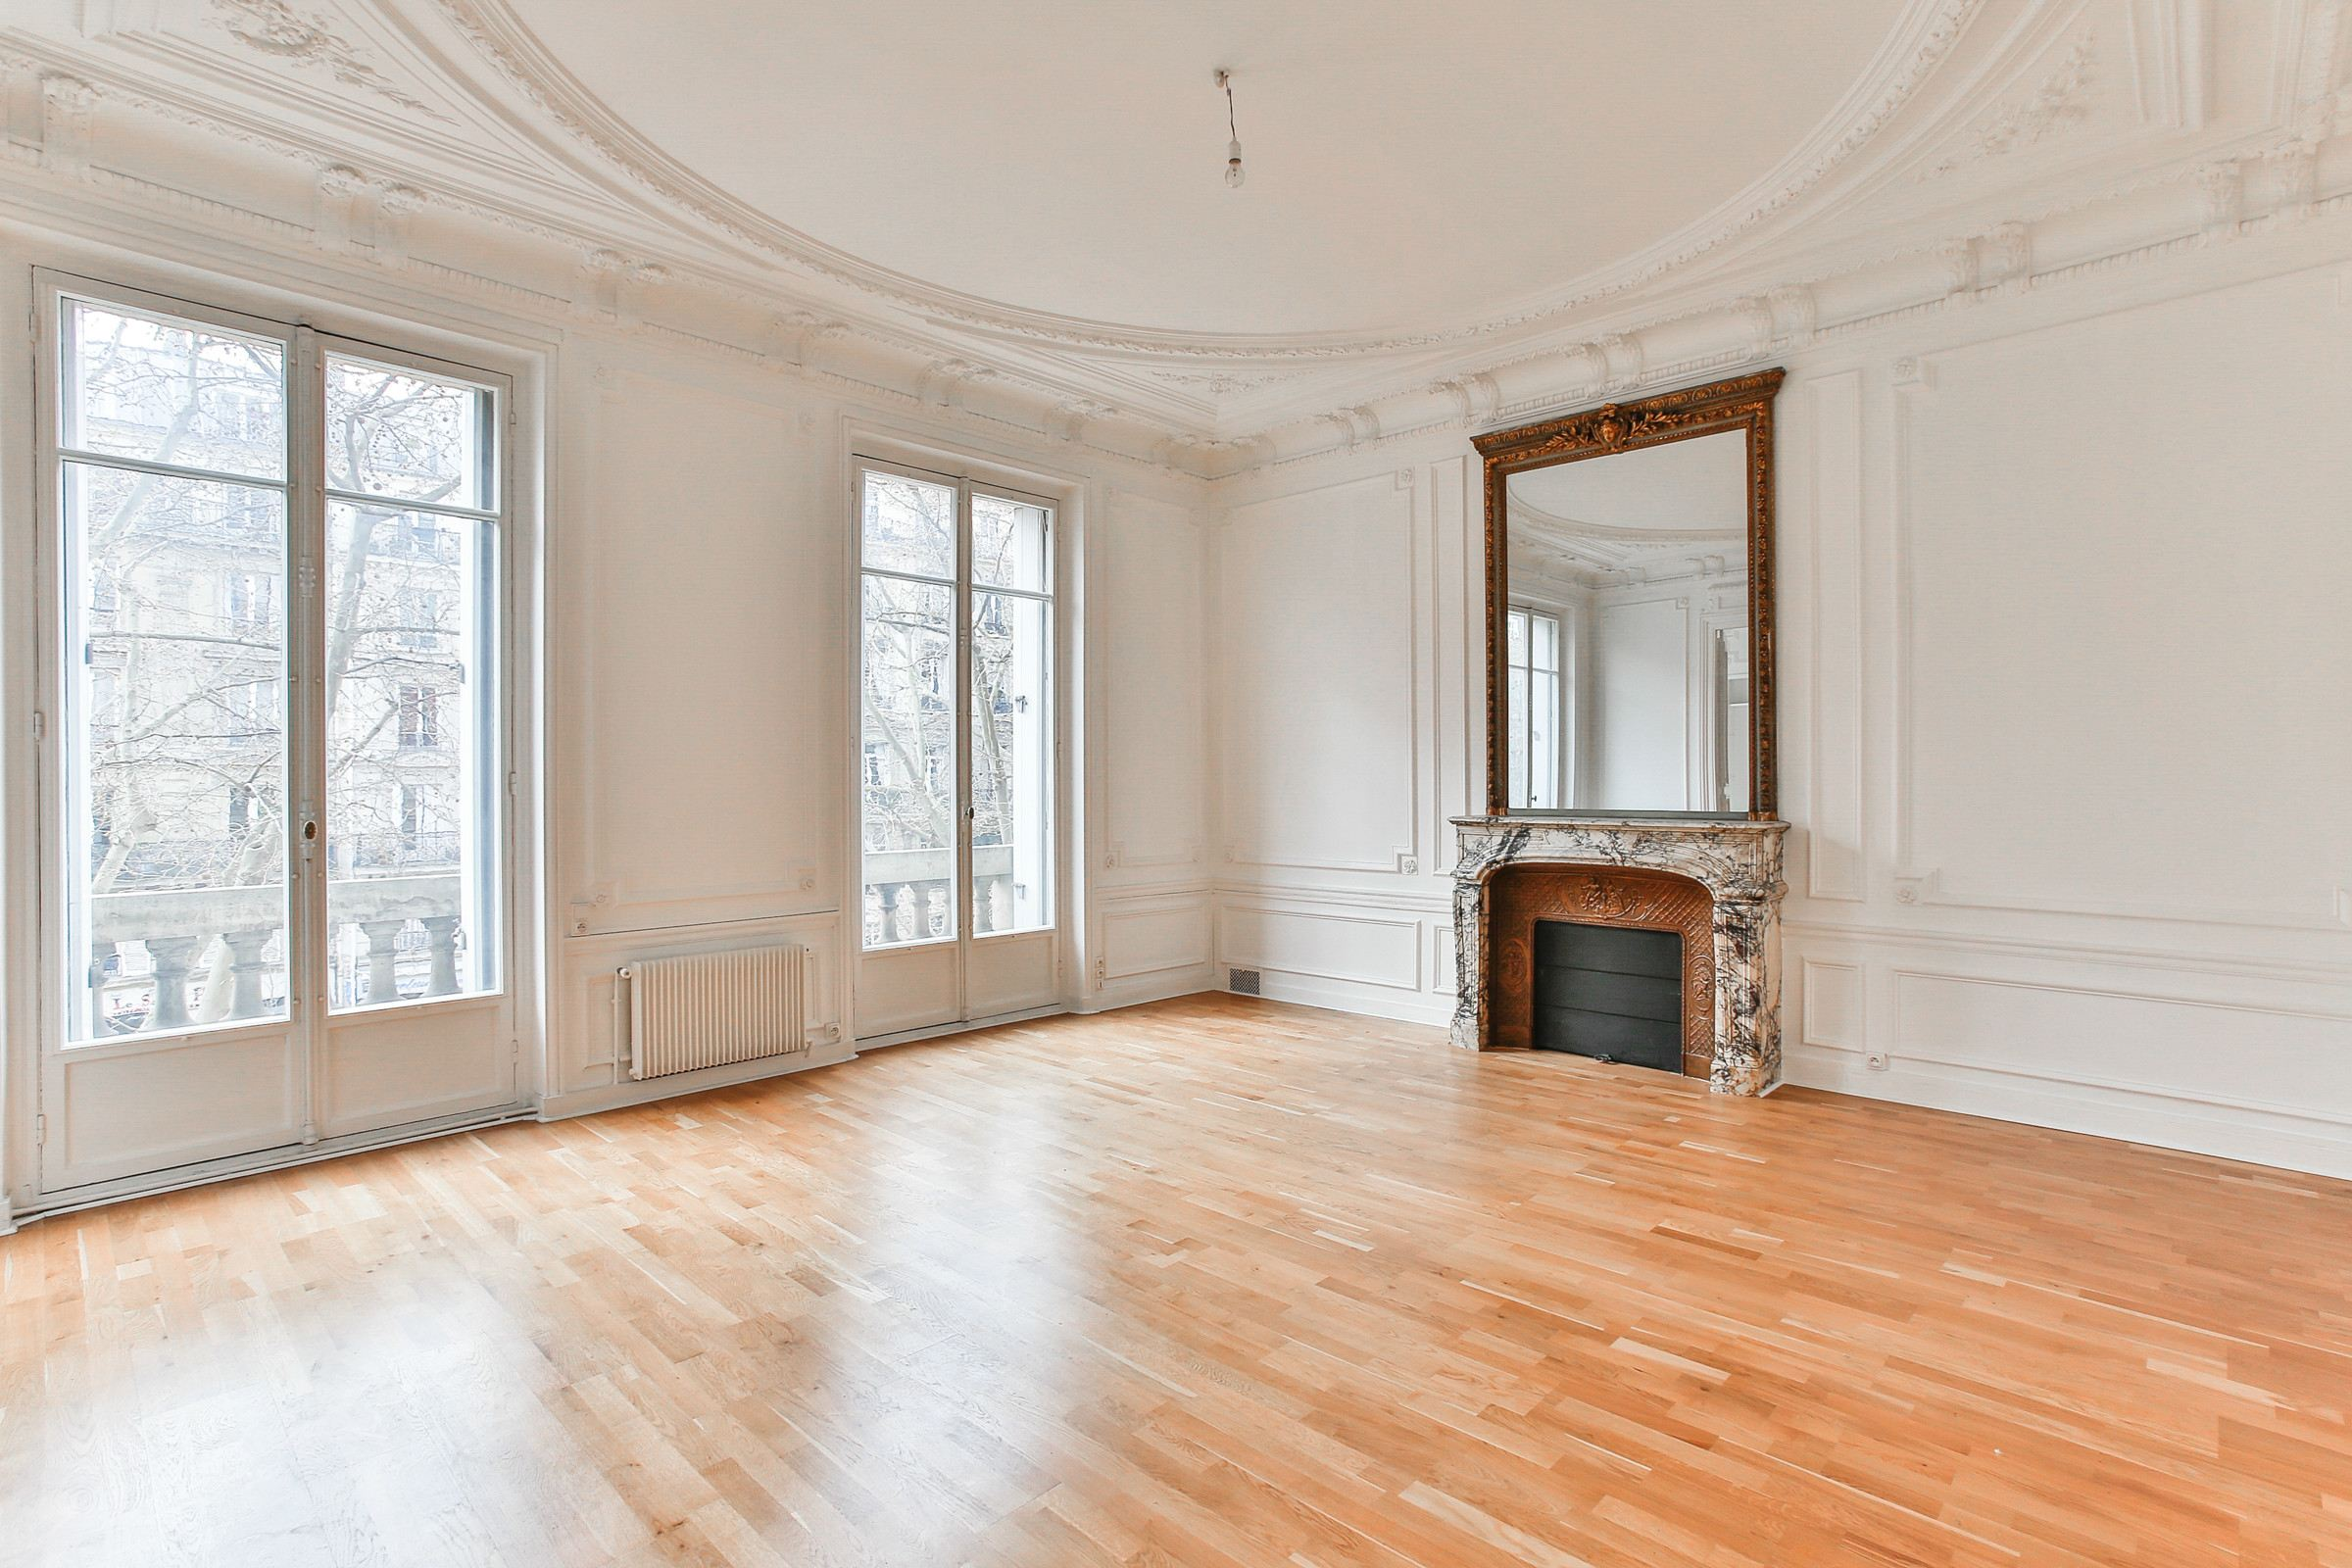 公寓 為 出售 在 Paris 17 - Reception apartment of 228 m². Triple orientation Paris, 巴黎 75017 法國